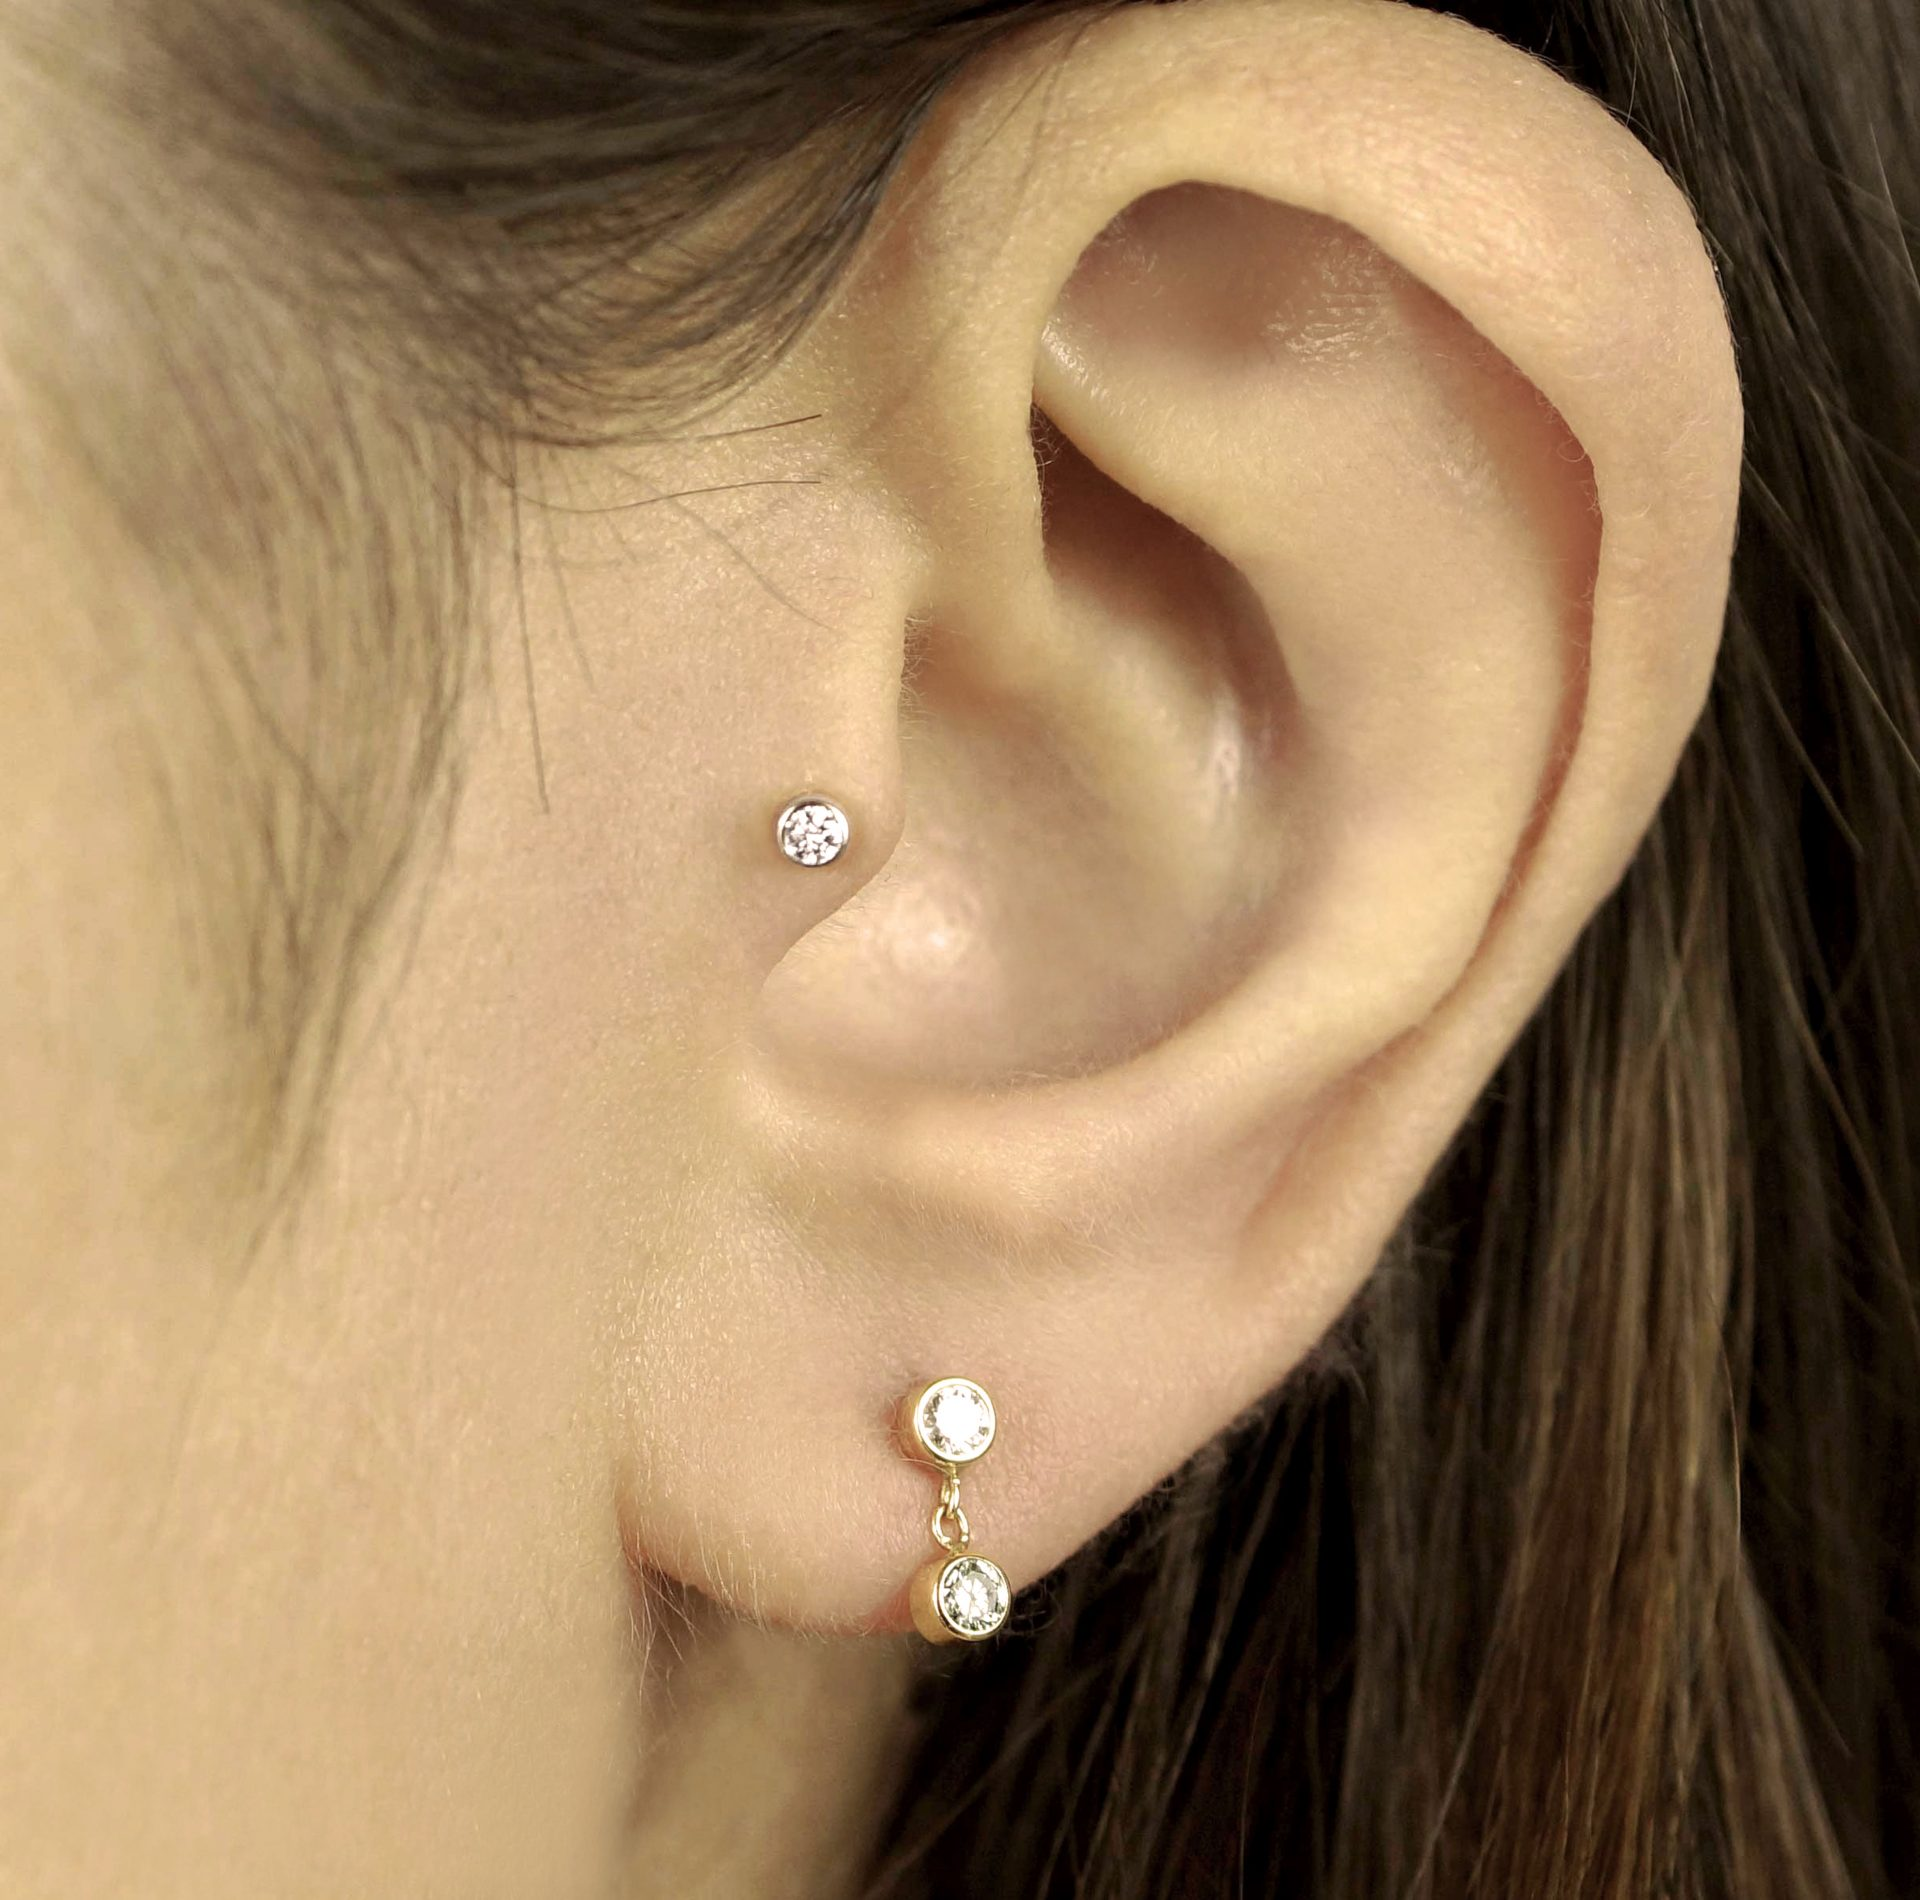 best-quality-piercing-jewelry-brands-lena-cohen-designer-cartilage-earrings-18k-gold